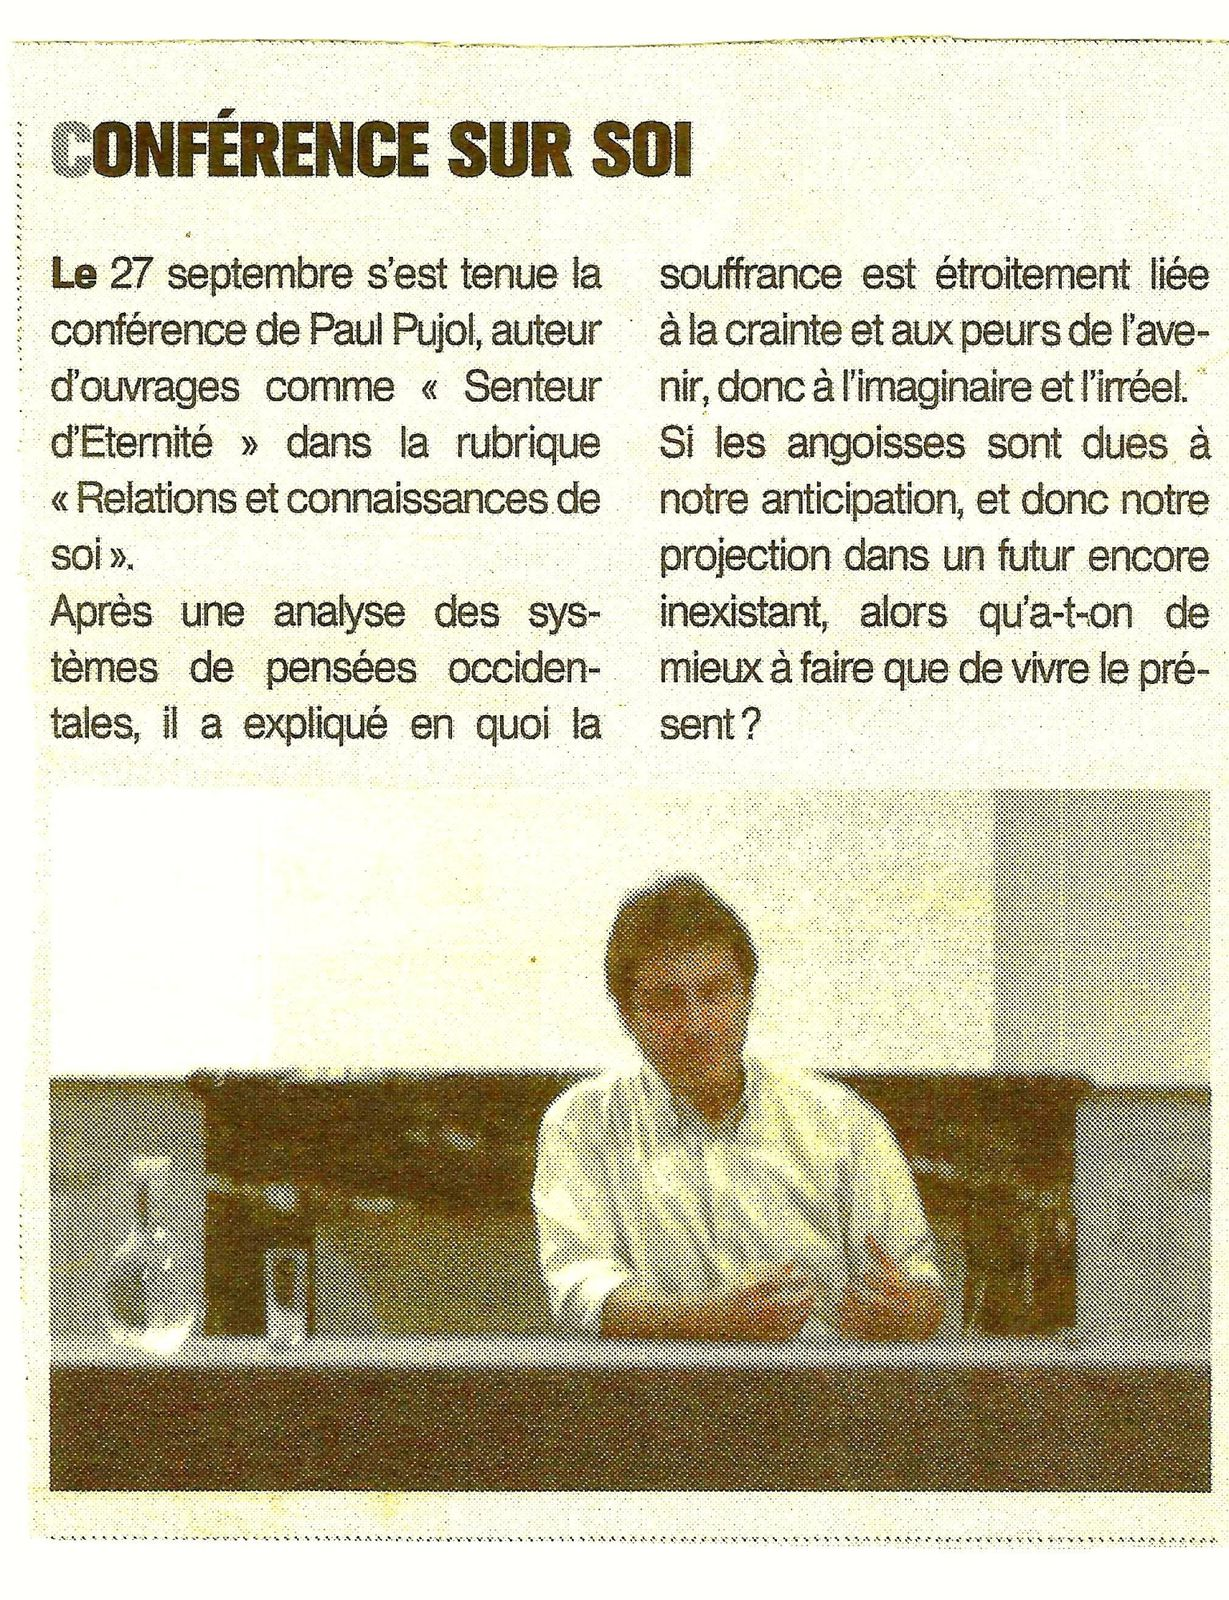 Article Tribune de Vienne